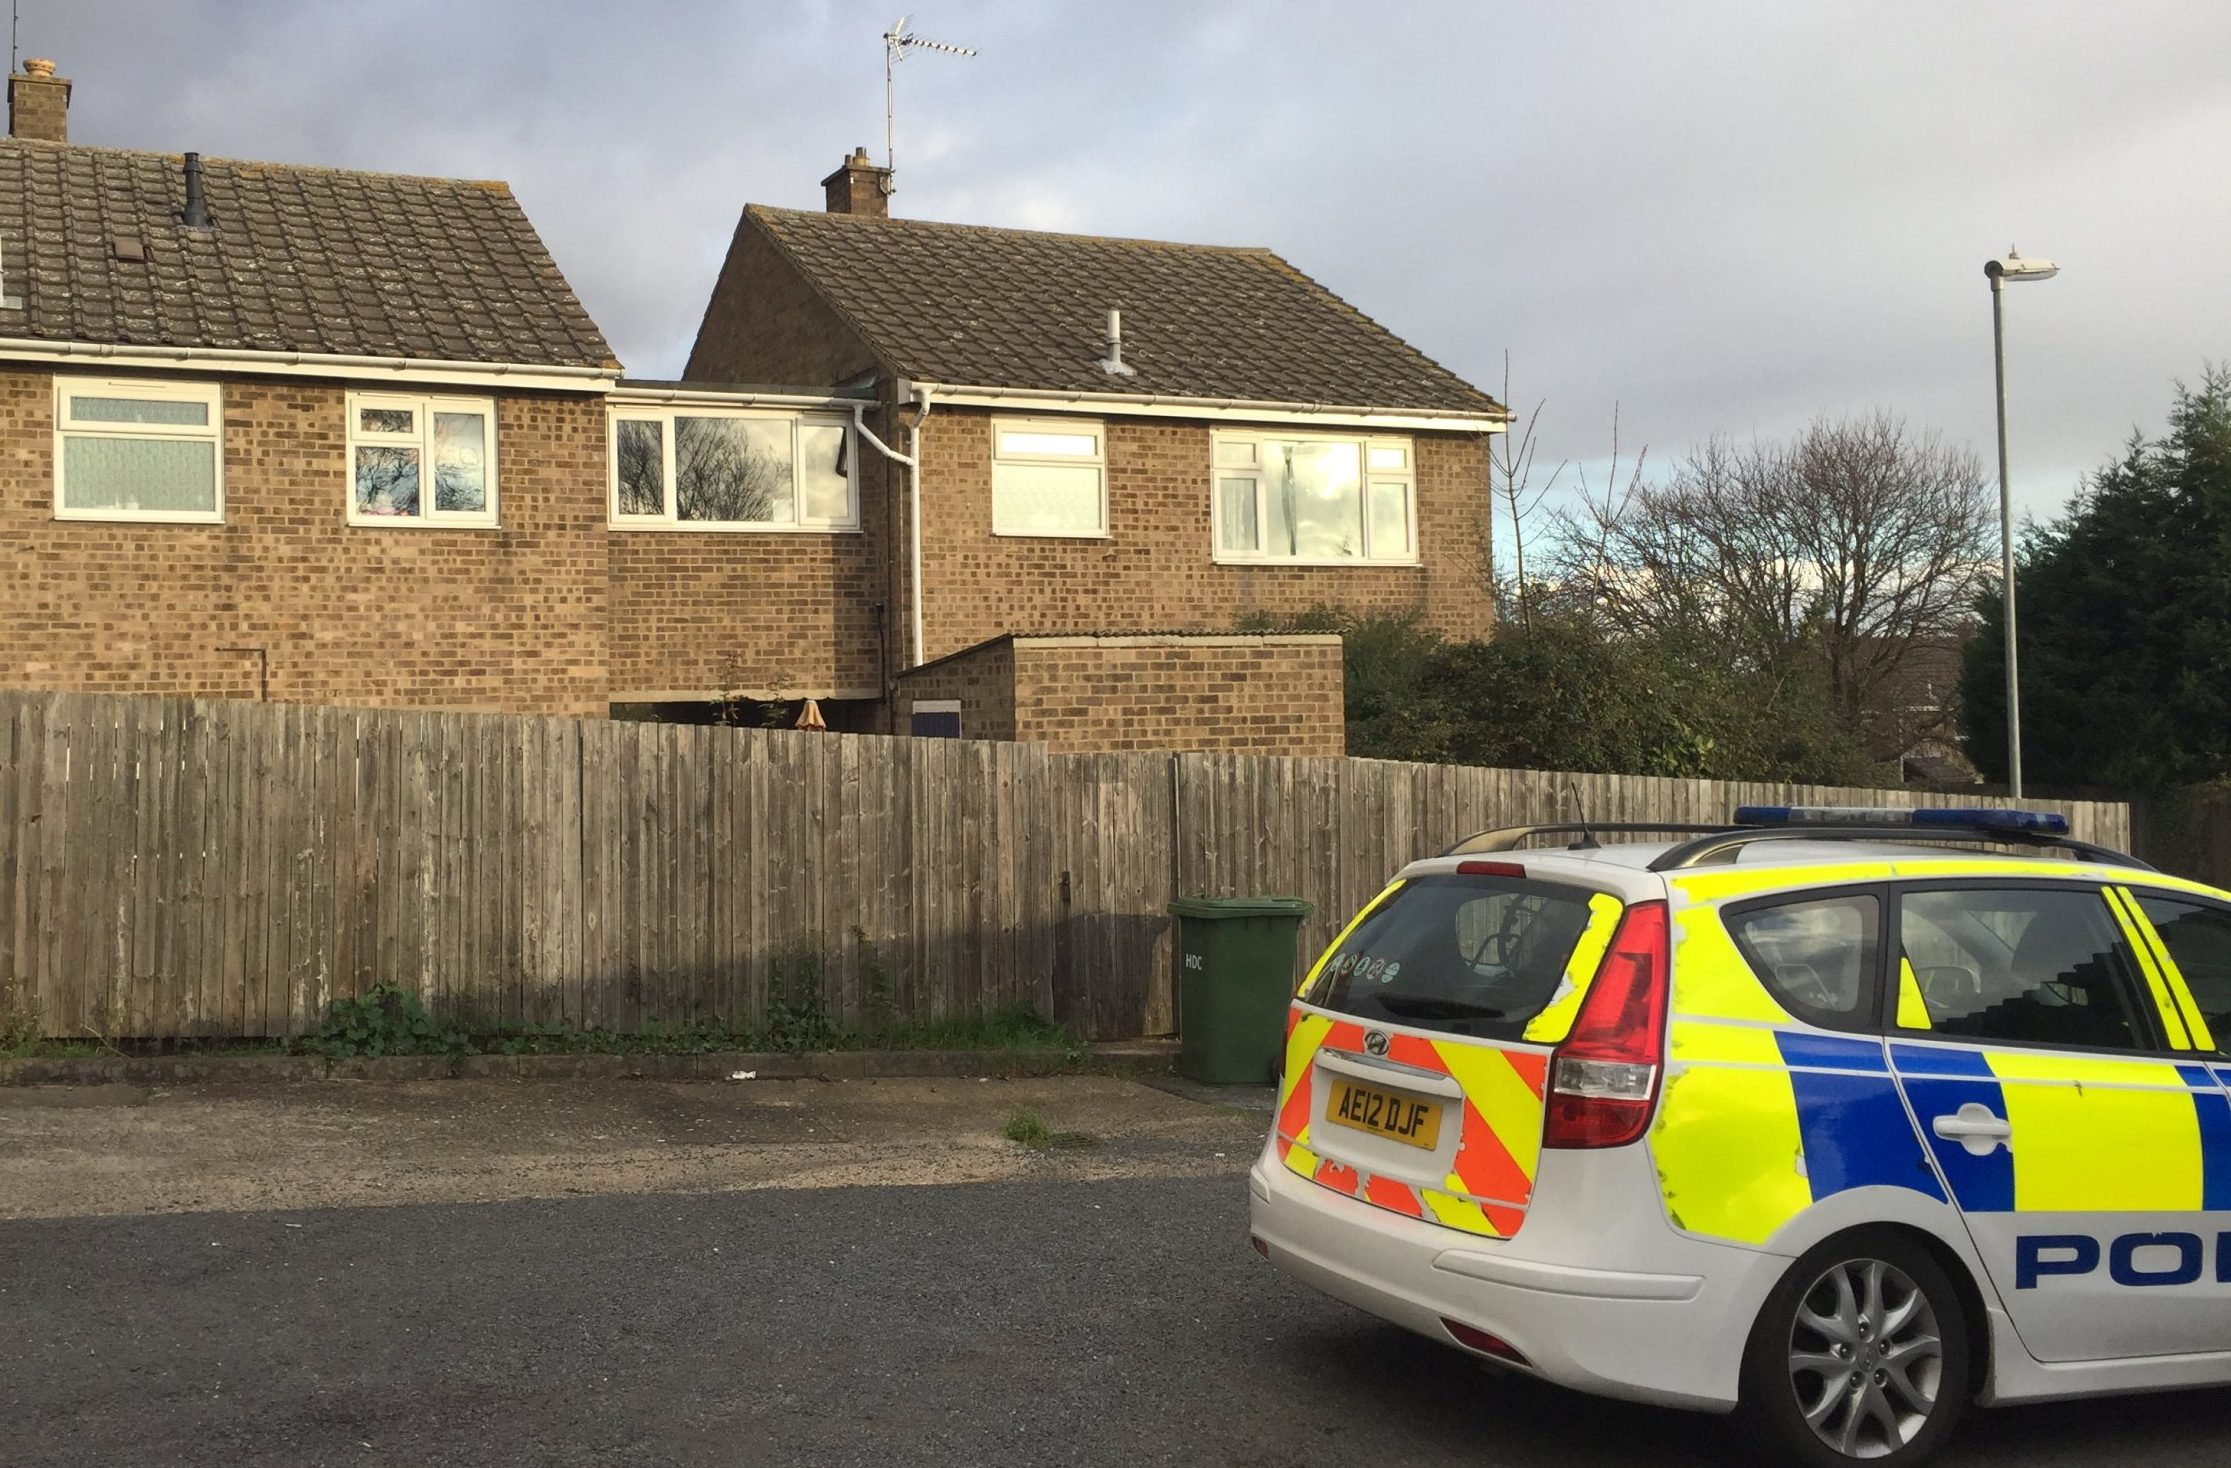 Police on Wykes Road, Peterborough, Cambs, after a baby was attacked by a Staffordshire Bull Terrier in a house on the road in the early morning of Sunday November 18 2018. See SWNS story SWCAbaby.A baby boy is fighting for life today after being attacked by a Staffordshire Bull Terrier.The un-named baby was attacked at 1.47am on Sunday at a house in Yaxley, near Peterborough, Cambs.The baby, which is under a year old, is currently in Addenbrooke?s Hospital in Cambridge with life-threatening injuries.A 28-year-old-man and a 31-year-old woman have been arrested on suspicion of child neglect and two Staffordshire Bull Terriers seized following the incident.